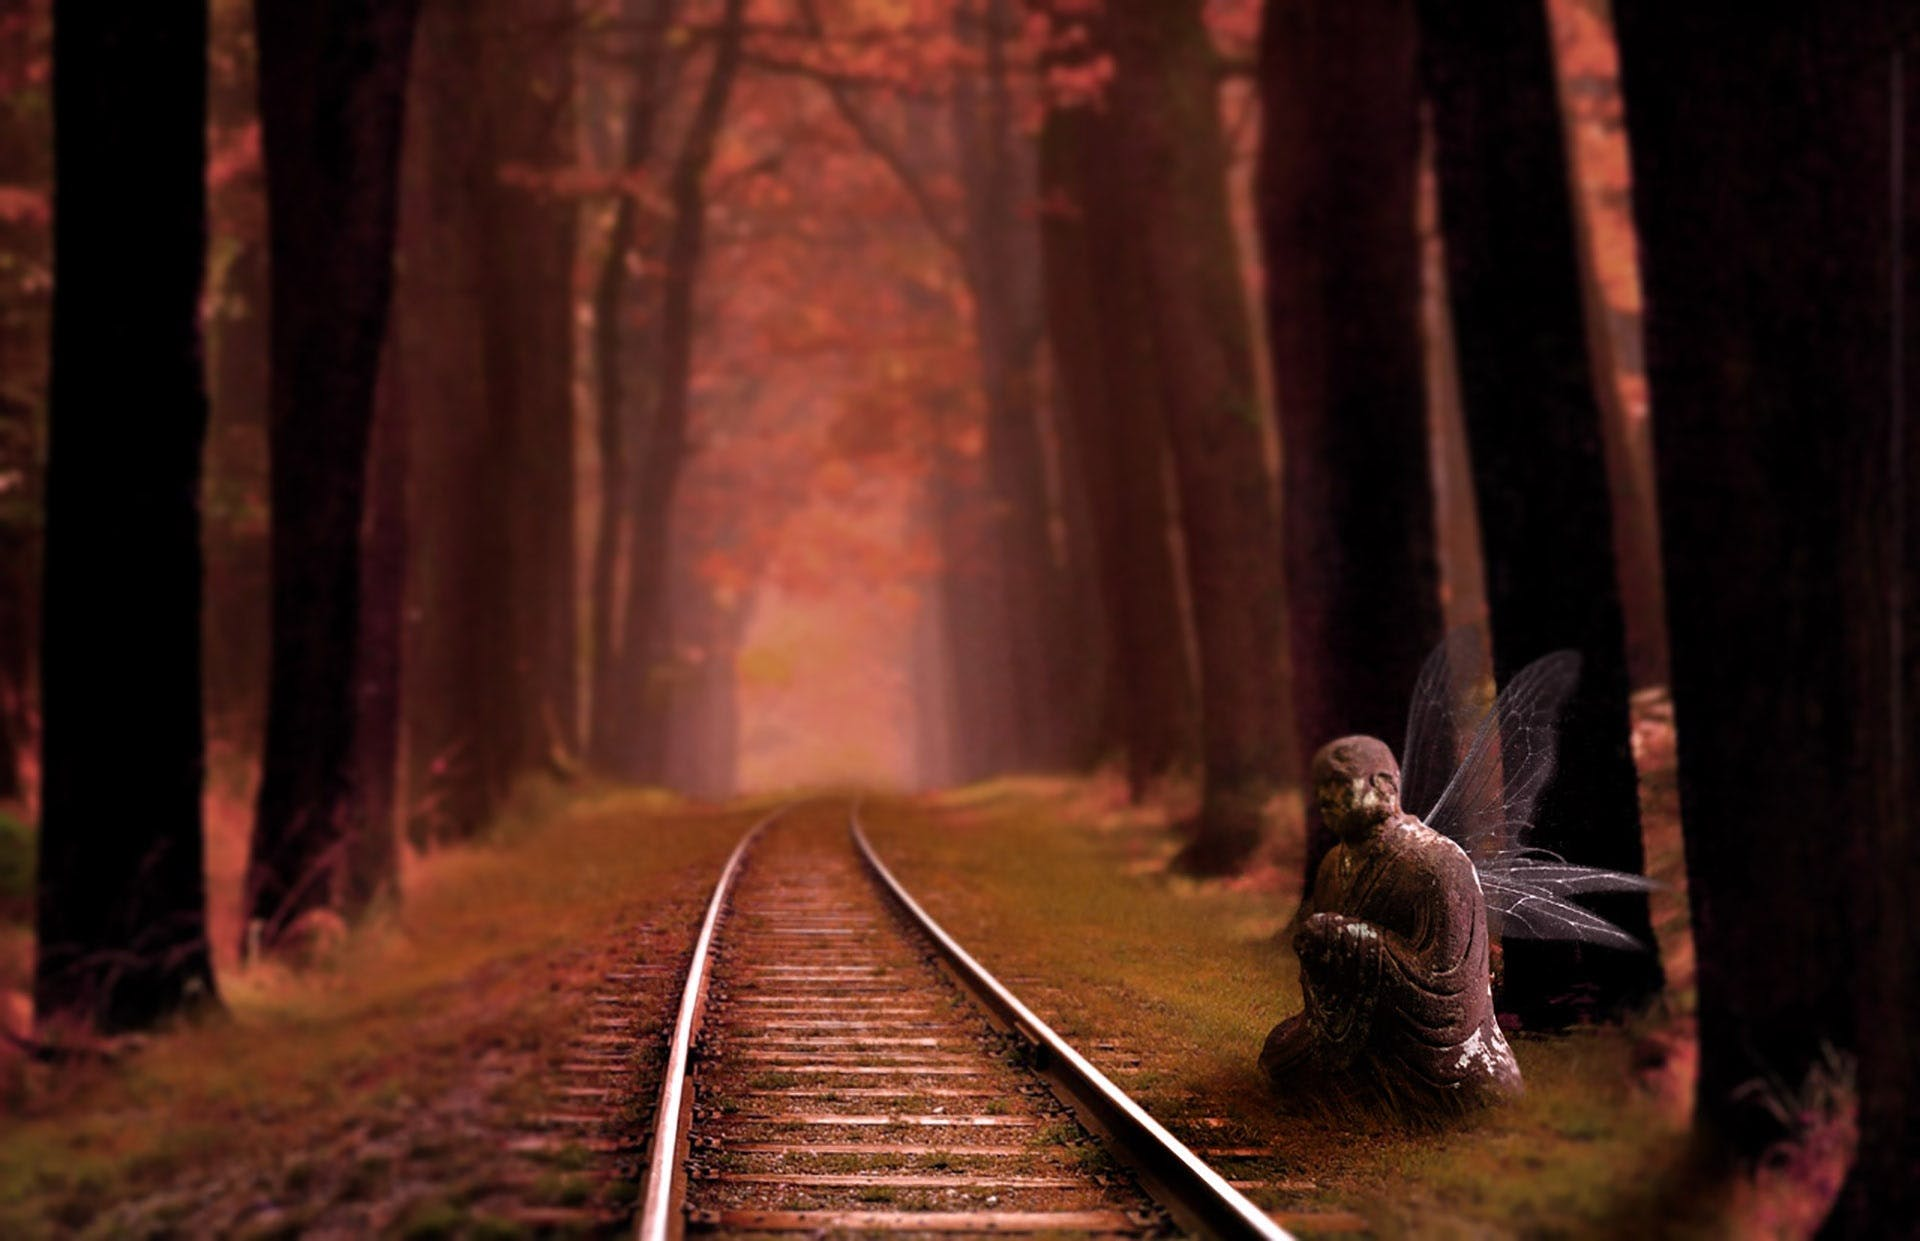 Railroad Track in Forest at Night